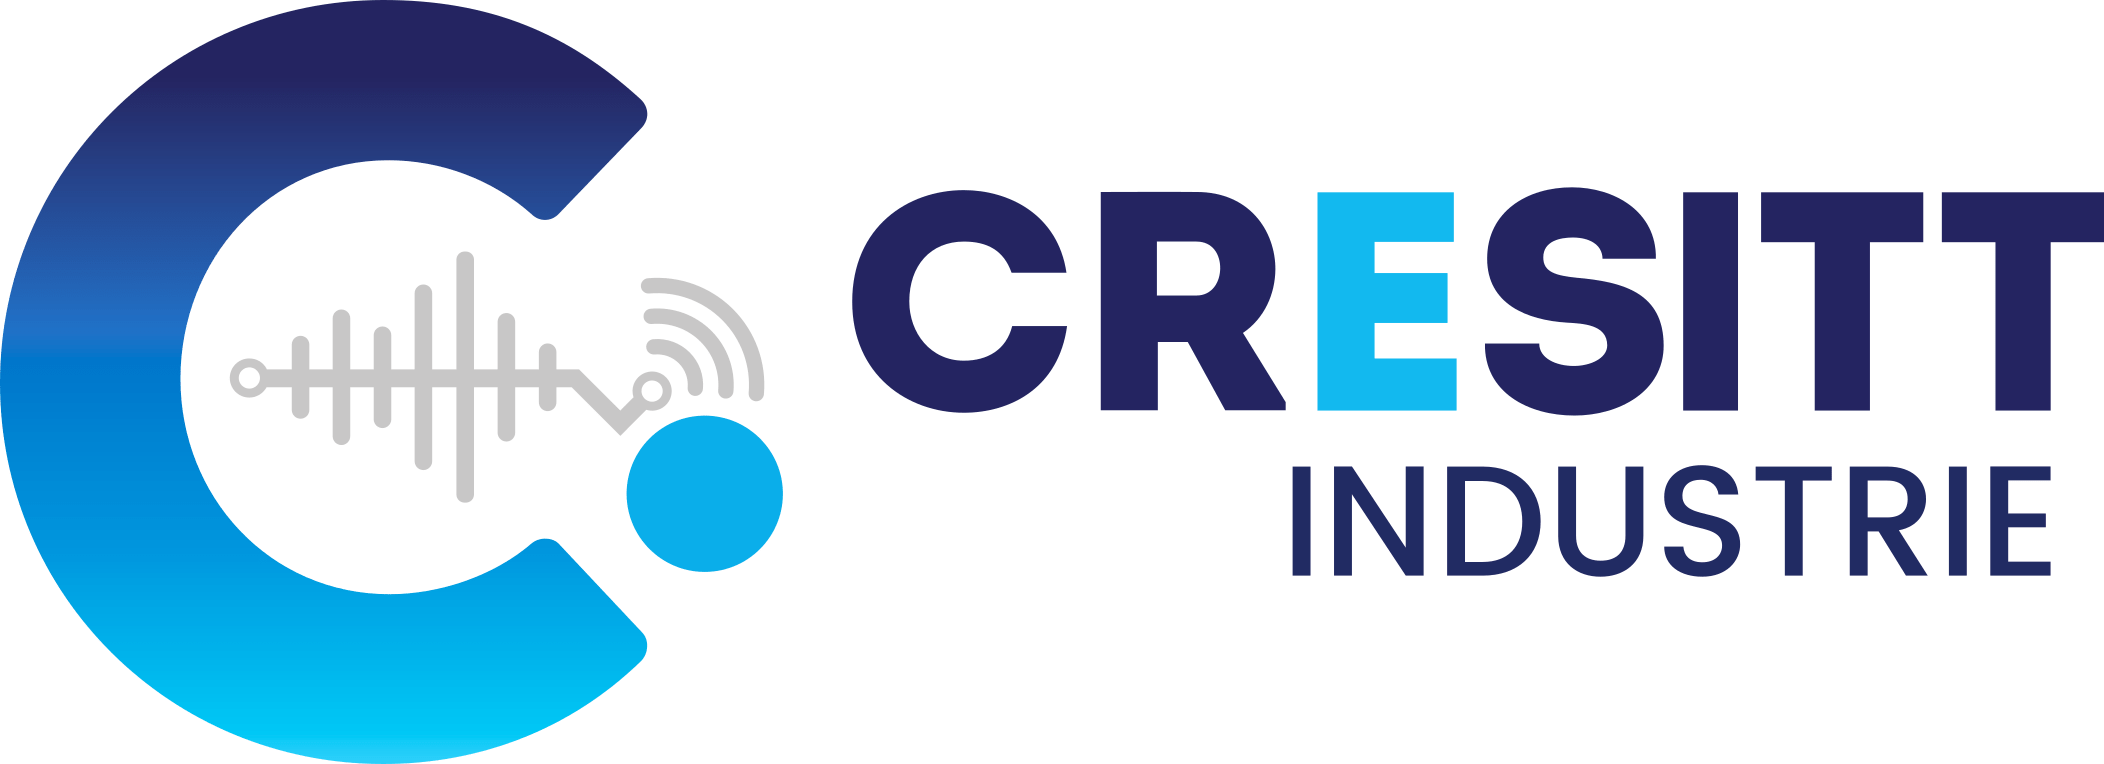 CRESITT Industrie -  The partner of your electronic projects